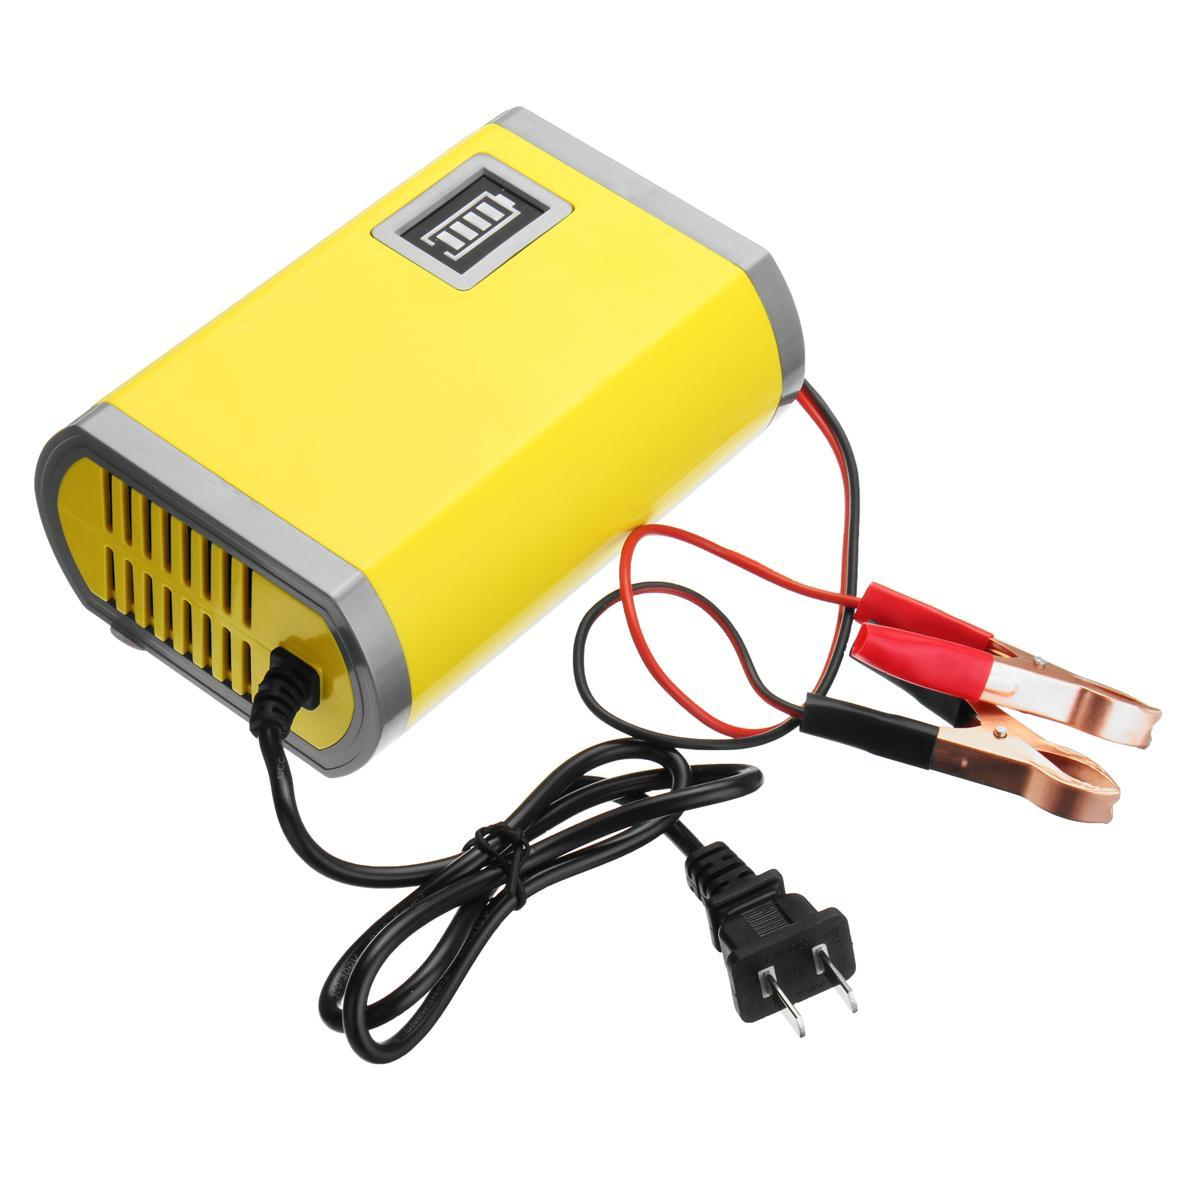 Buy The Old Tree Superchargers at Best Prices Online in